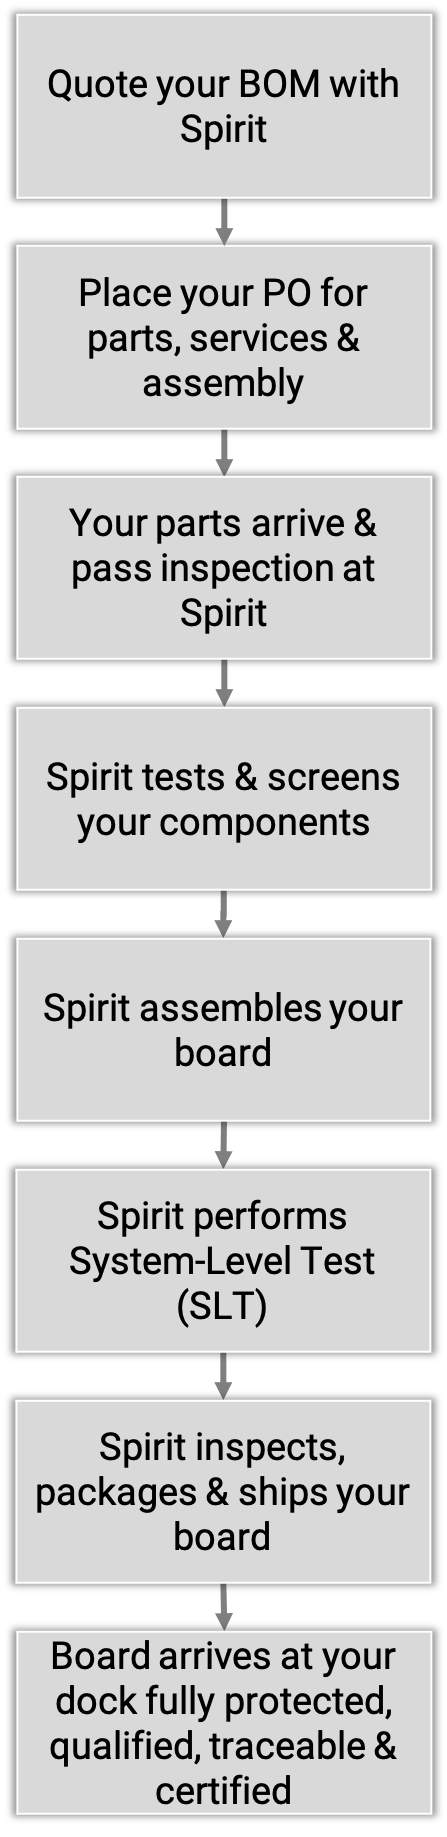 Spirit board assembly workflow for contract manufacturing